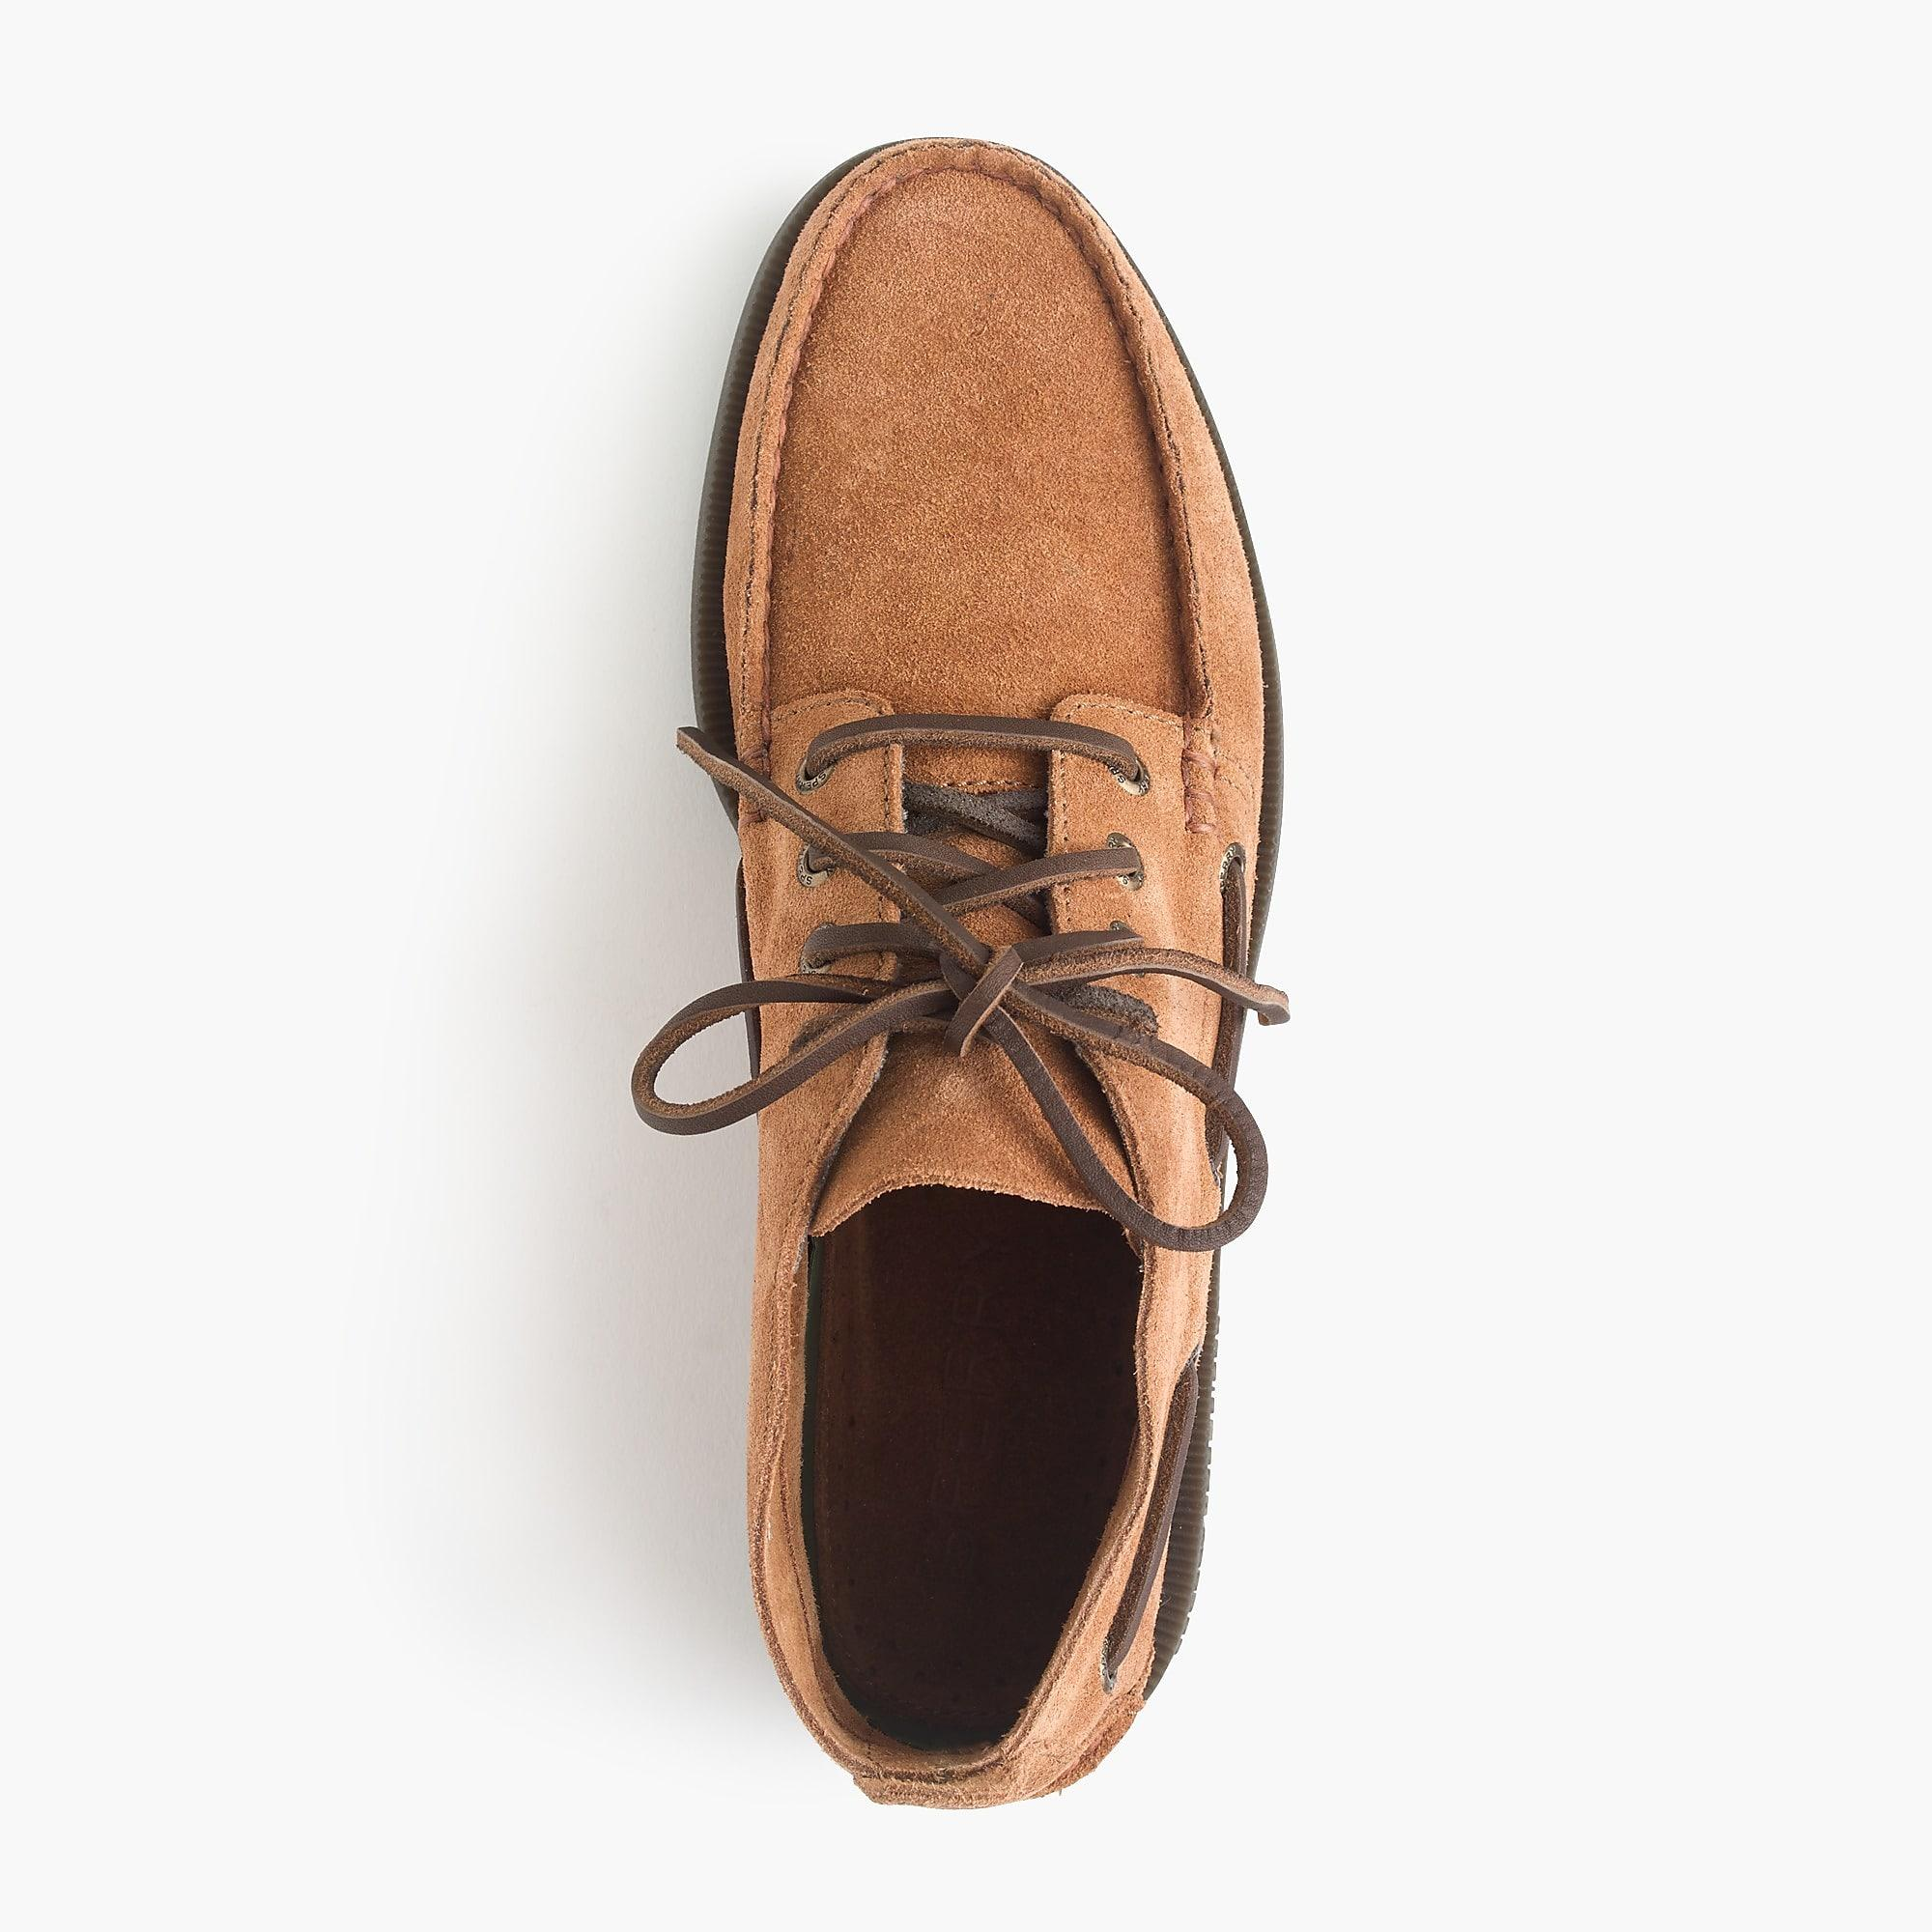 Sperry Top-Sider Suede Chukka Boots in